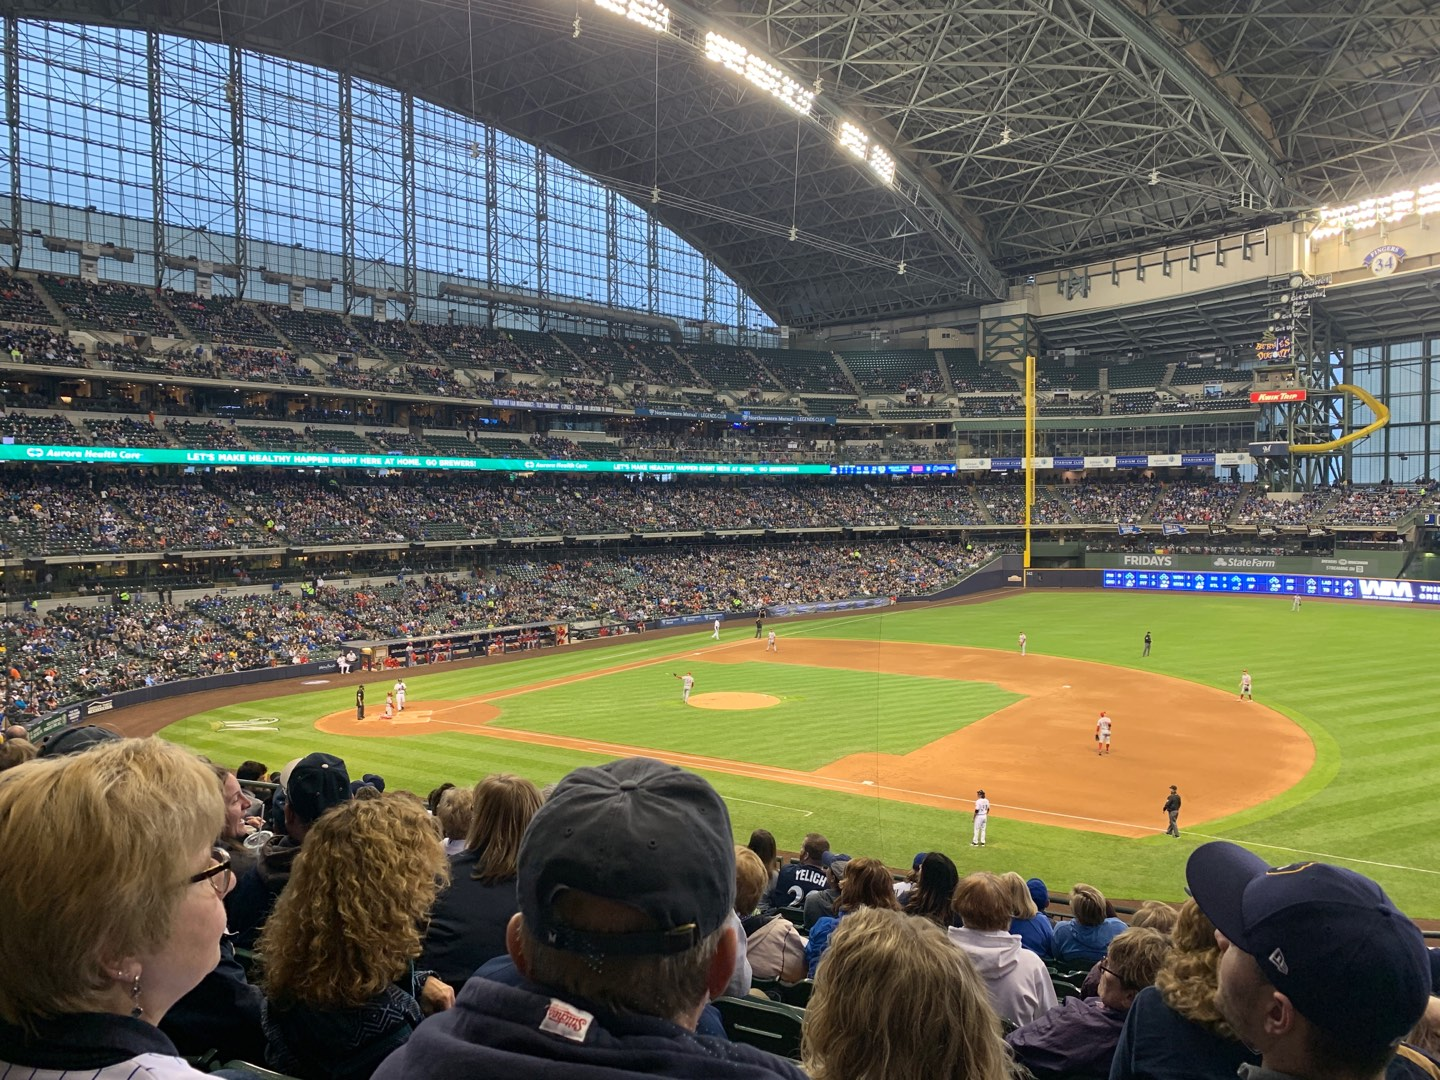 Miller Park Section 211 Row 11 Seat 12